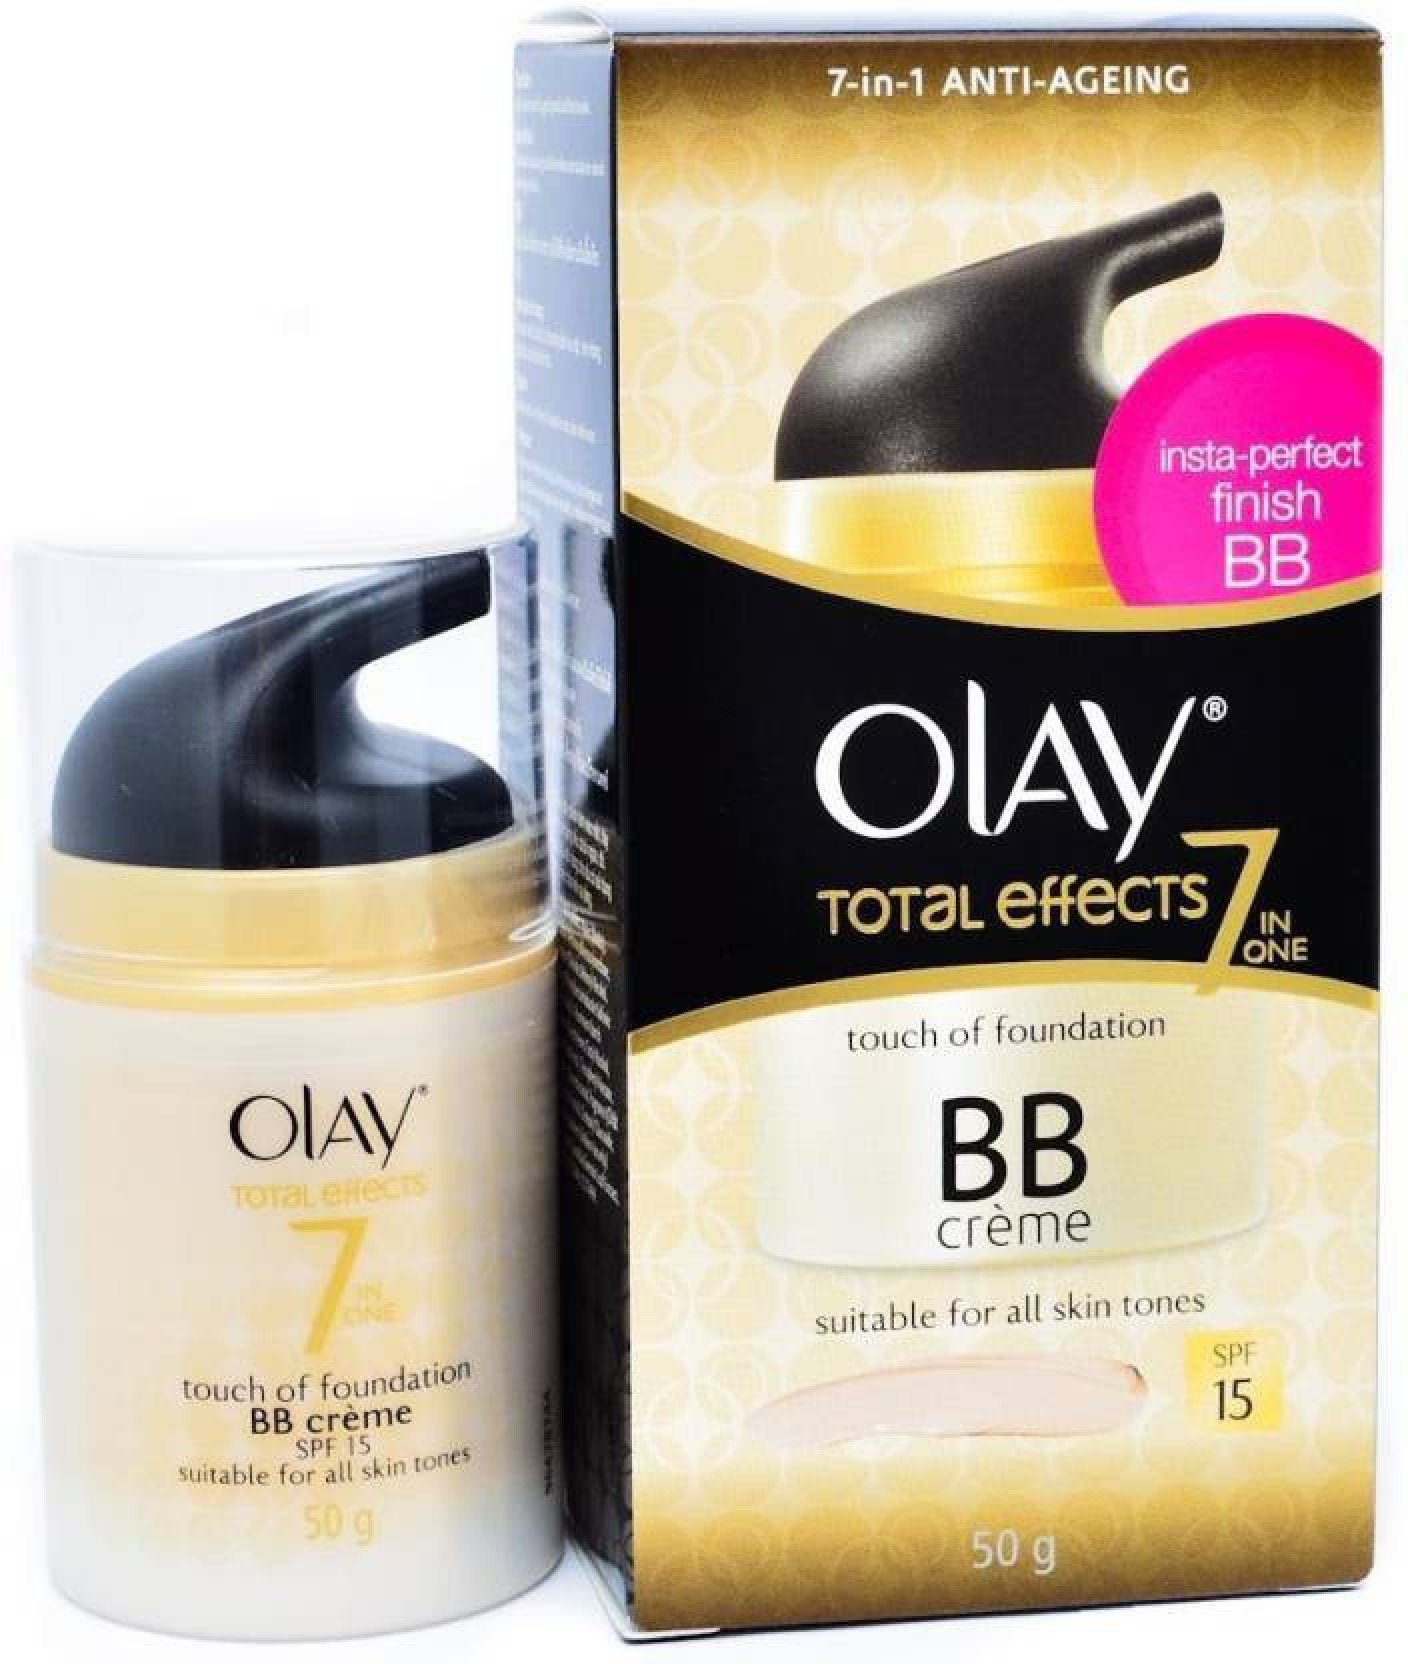 Olay Anti Ageing Cream Touch Of Foundation Price In India Buy Total Effects Day Normal Spf 15 8g Big Diwali Sale Ends In18 Hrs 29 Mins 40 Secs